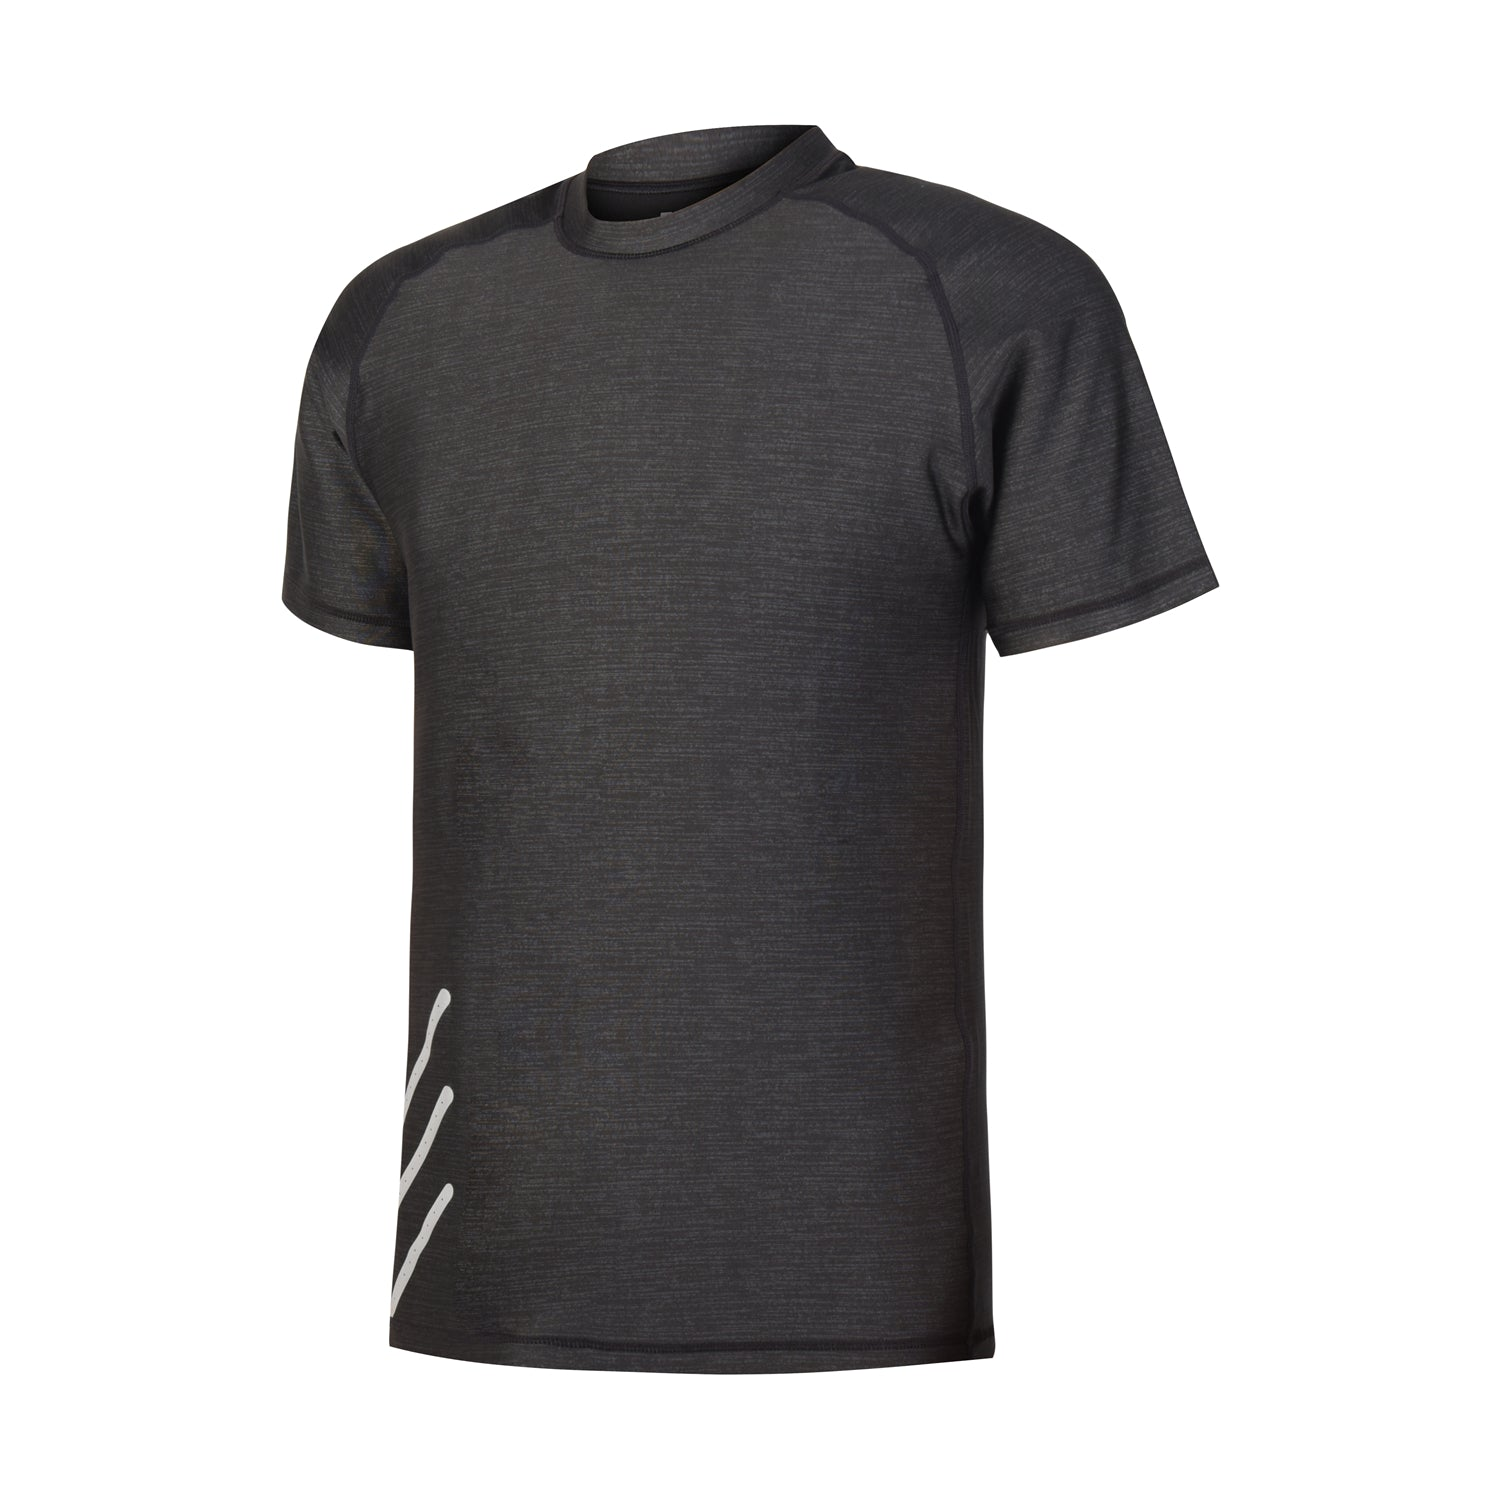 "Men's functional workout t-shirt "" Langton"" - IAM3F"